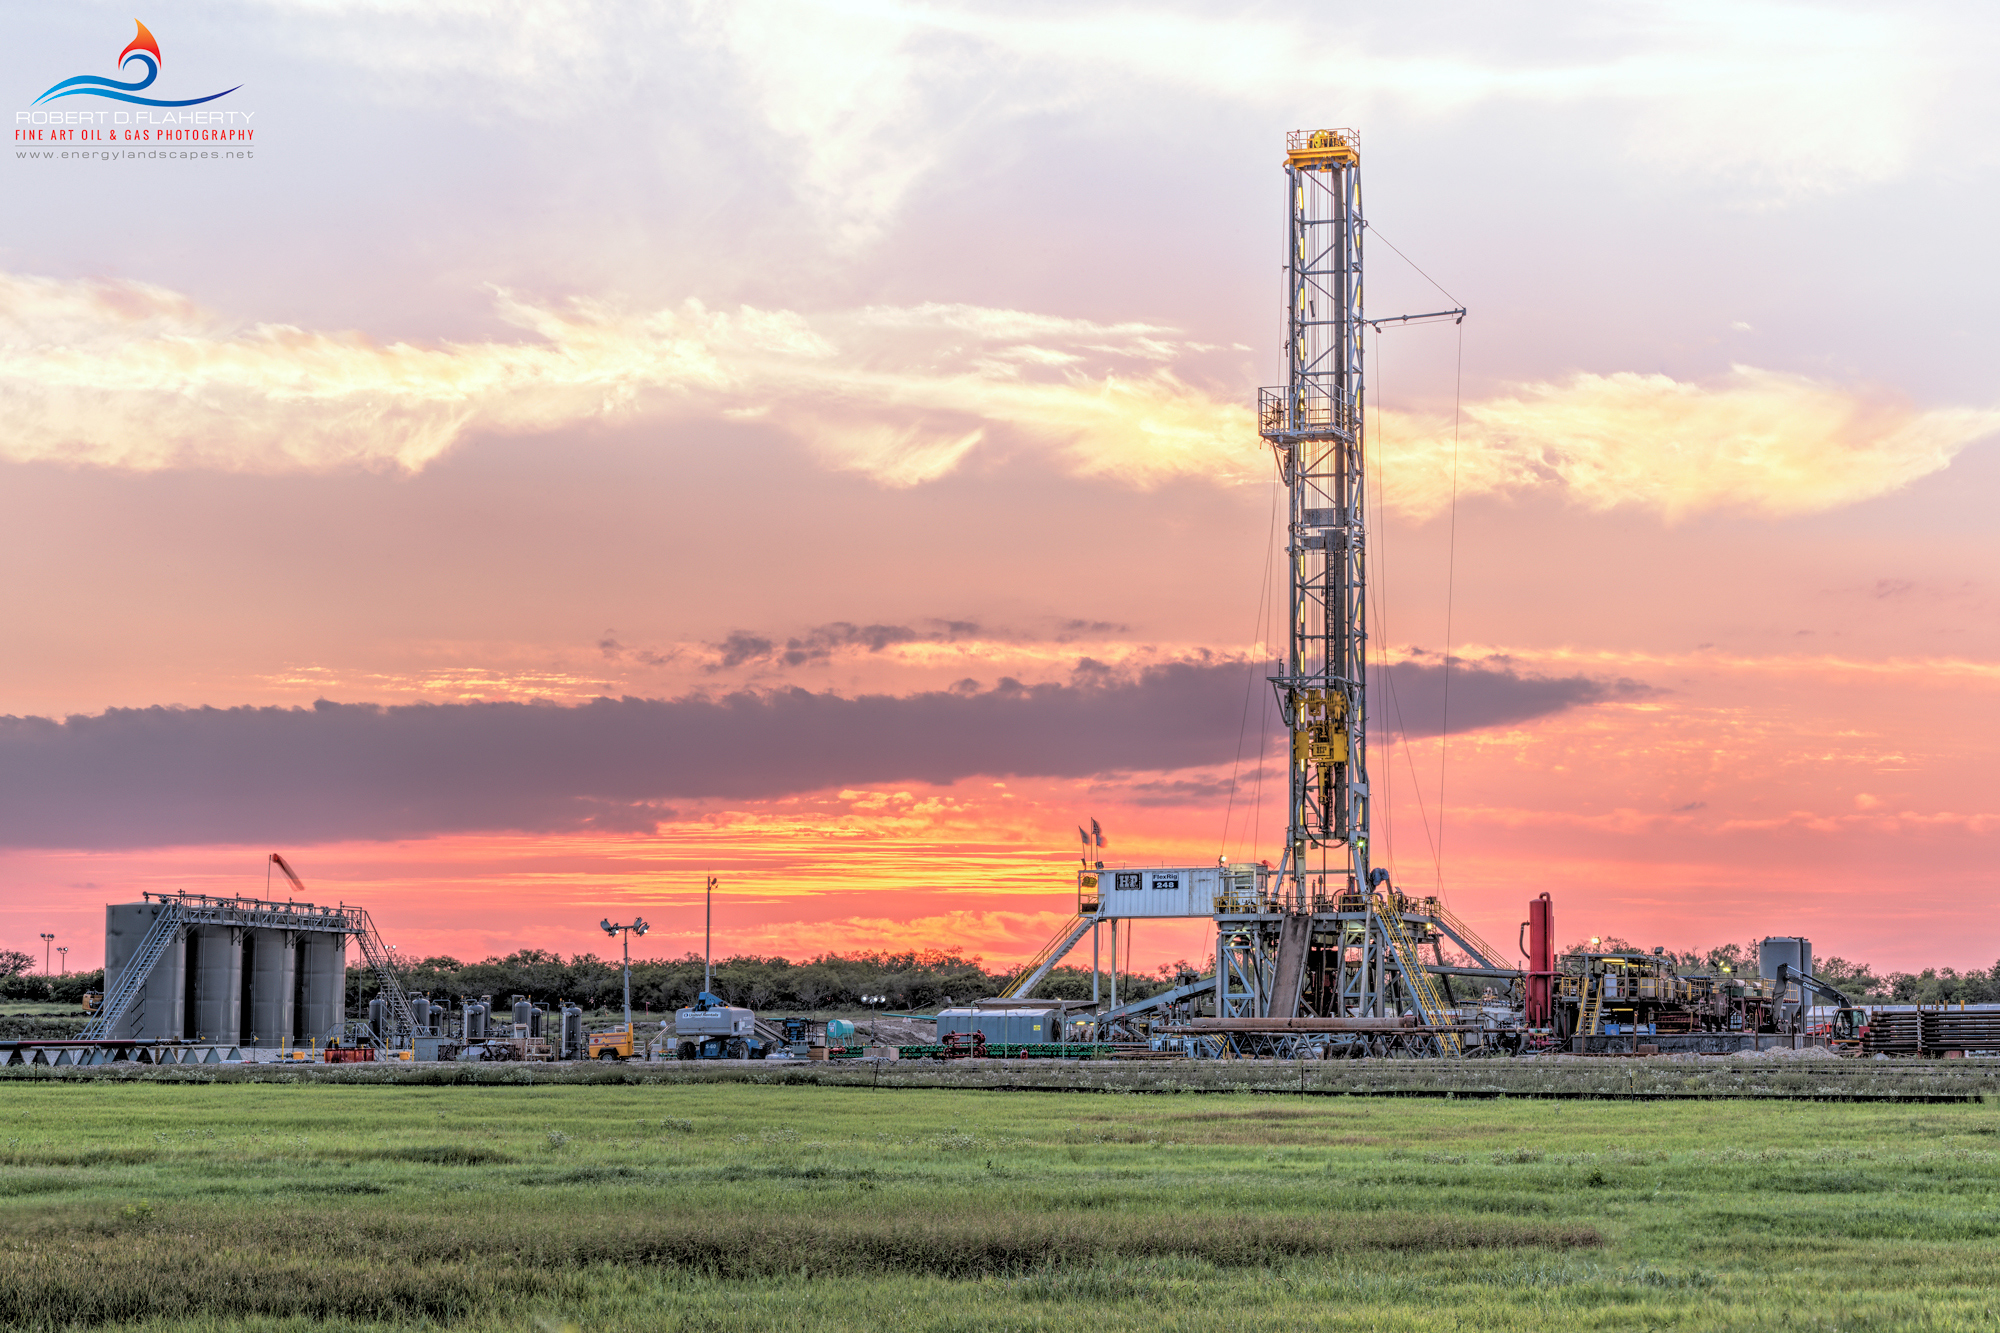 Eagle Ford, drilling rig, sunset, high resolution, mural, fine art, Karnes City Texas, H&P Drilling, H&P Drilling rig 248, directional well,  directional drilling, pad drilling, oilfield art